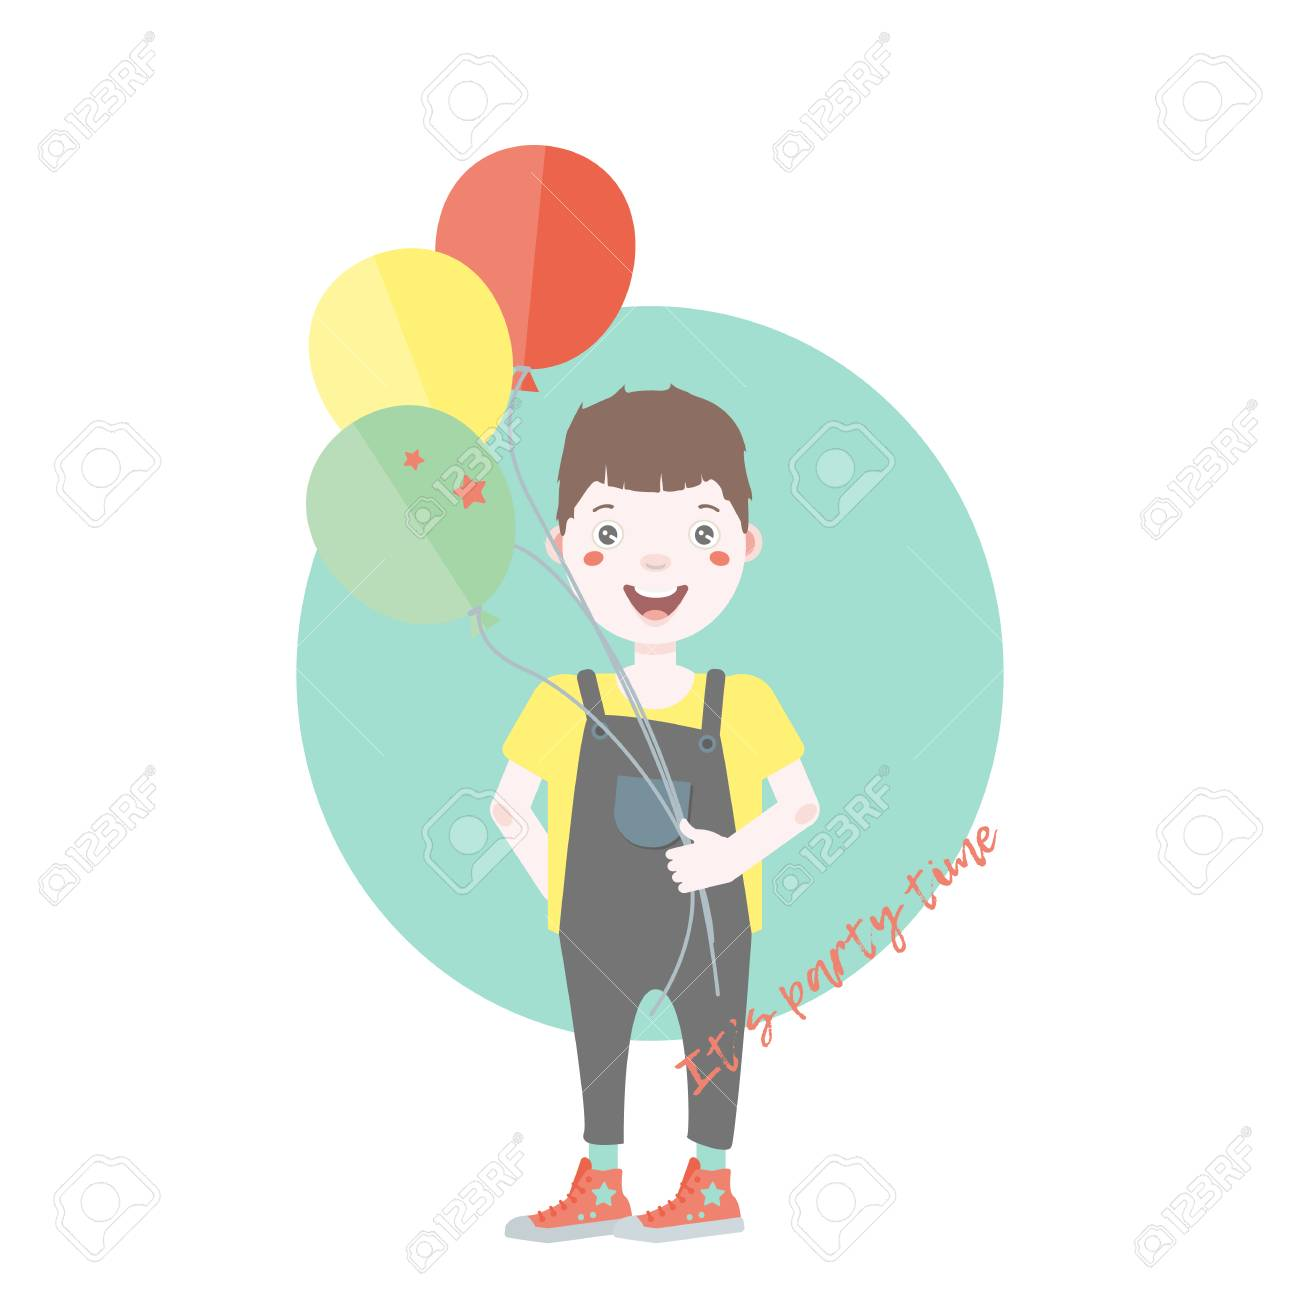 Funny Birthday Card Dark Haired Young Character With Balloons Having Fun At A Party Cartoon Vector